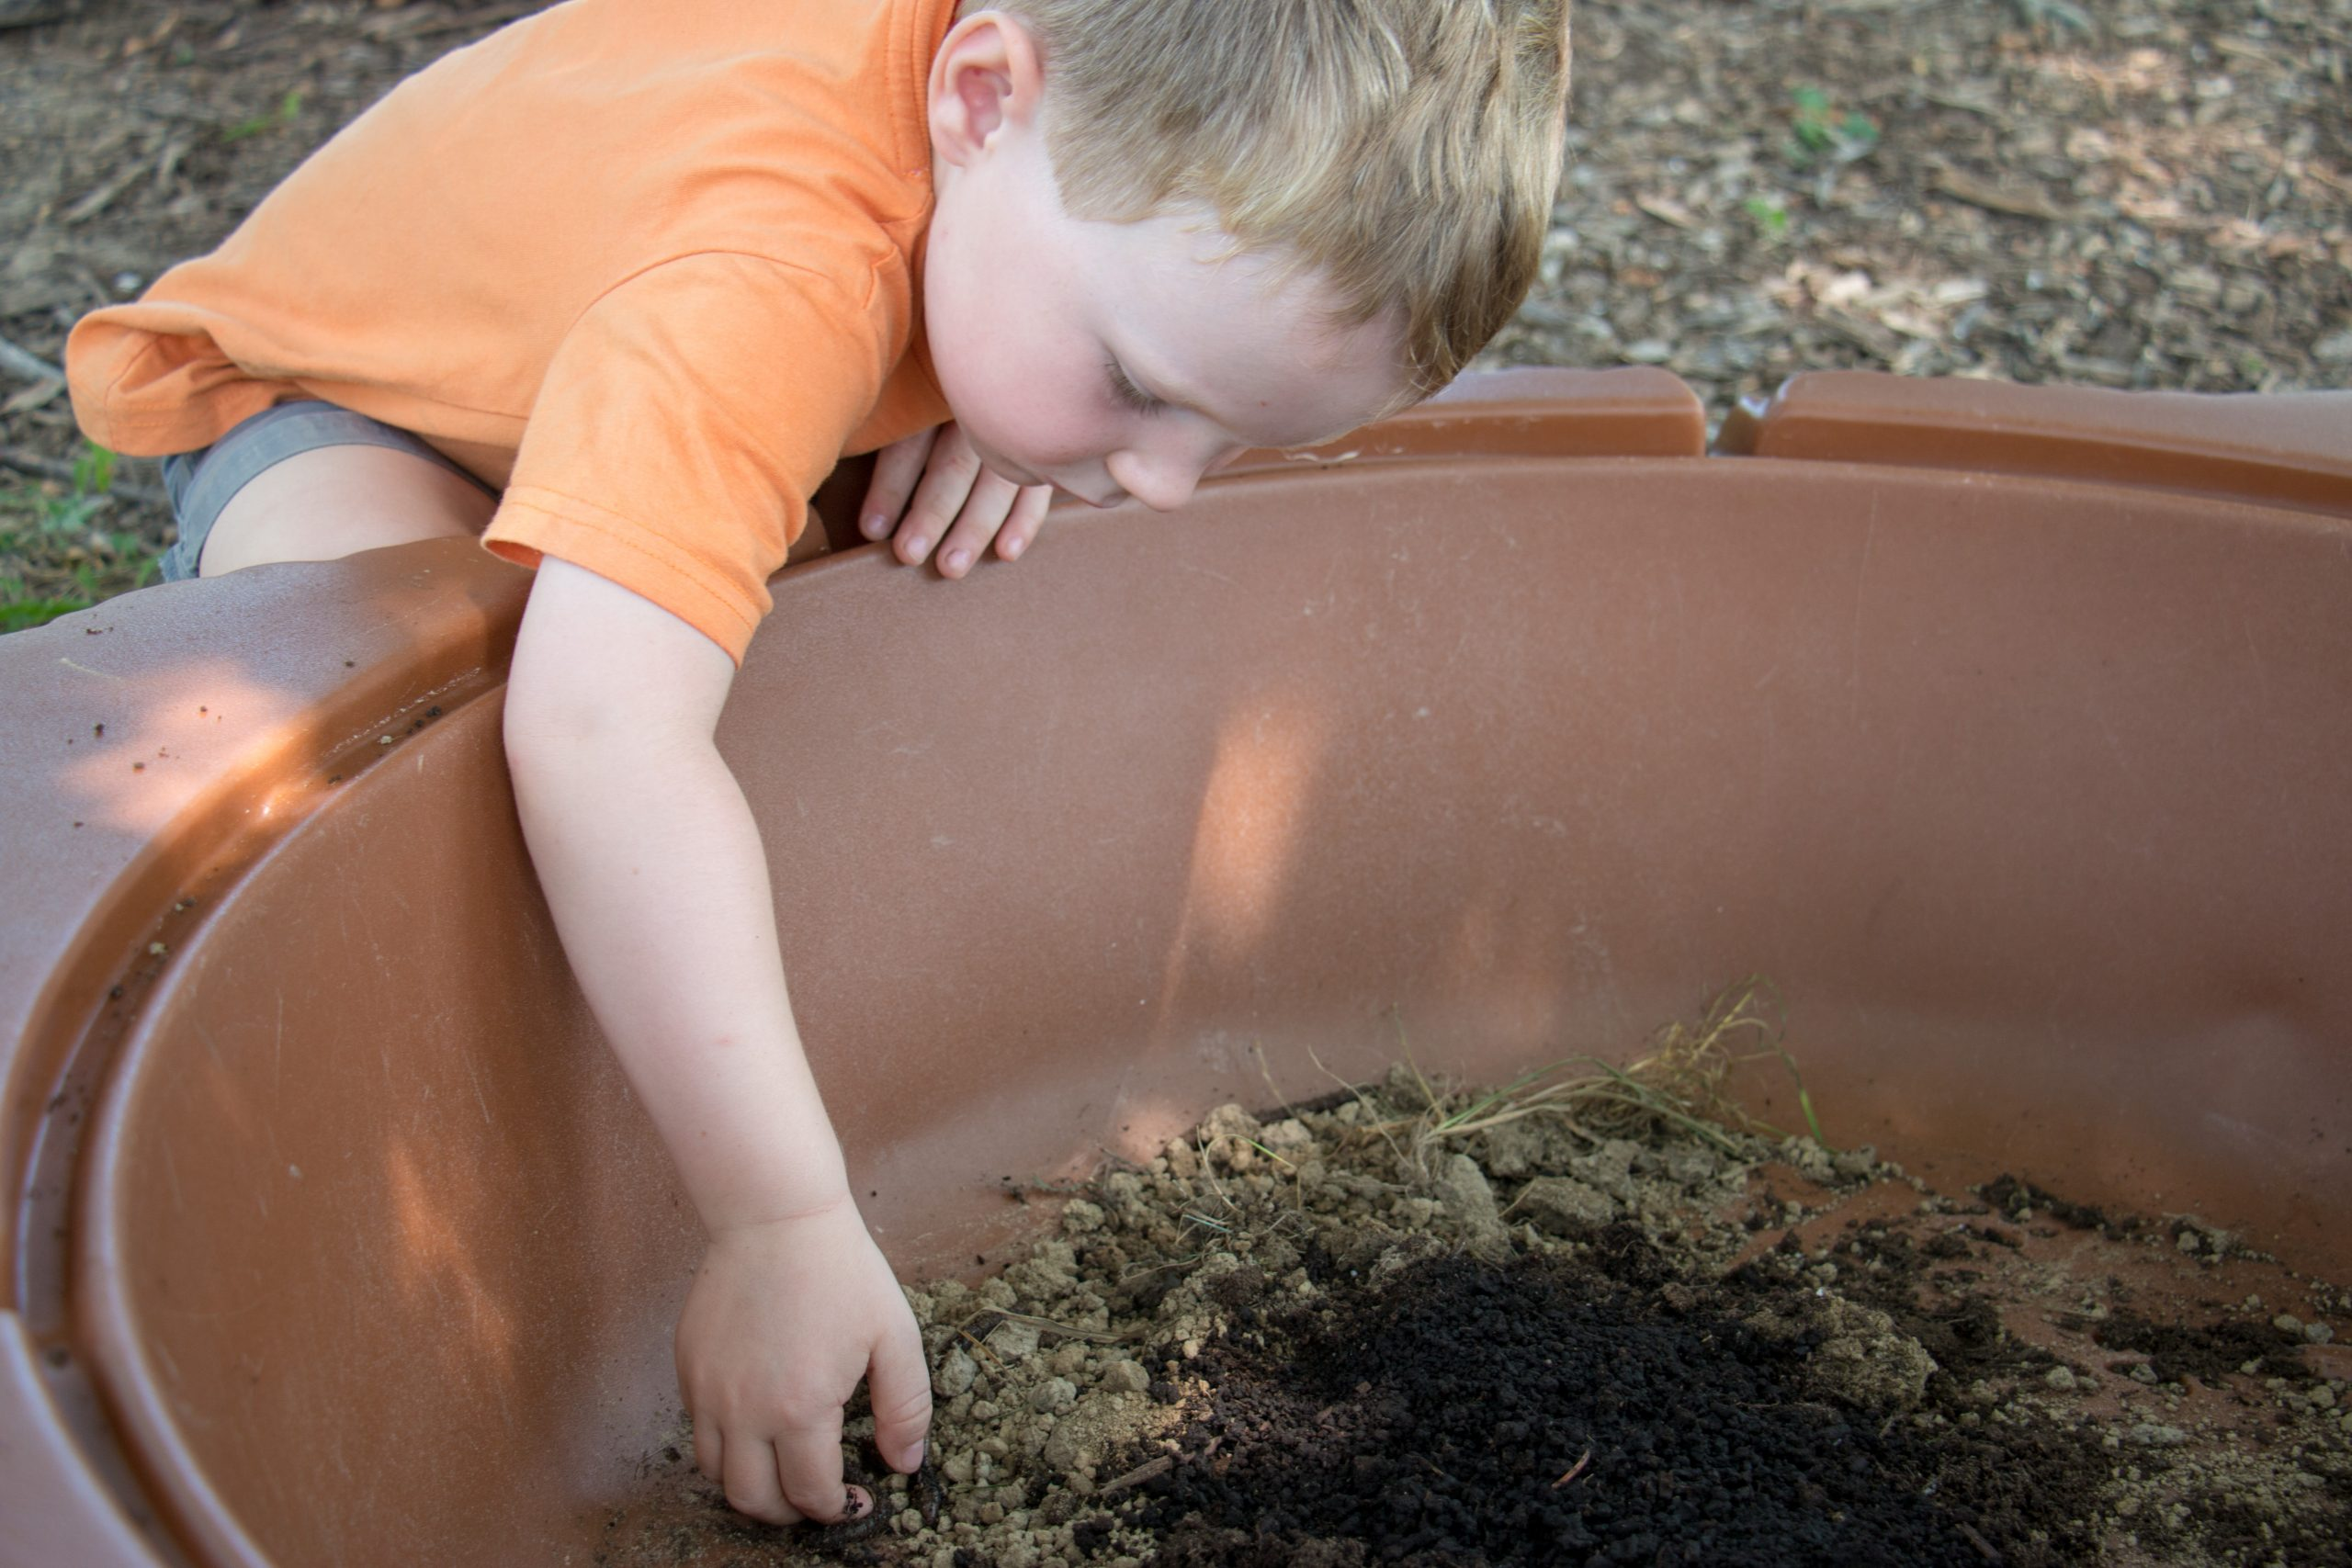 A young boy digs into dirt and mud. It is sunny.